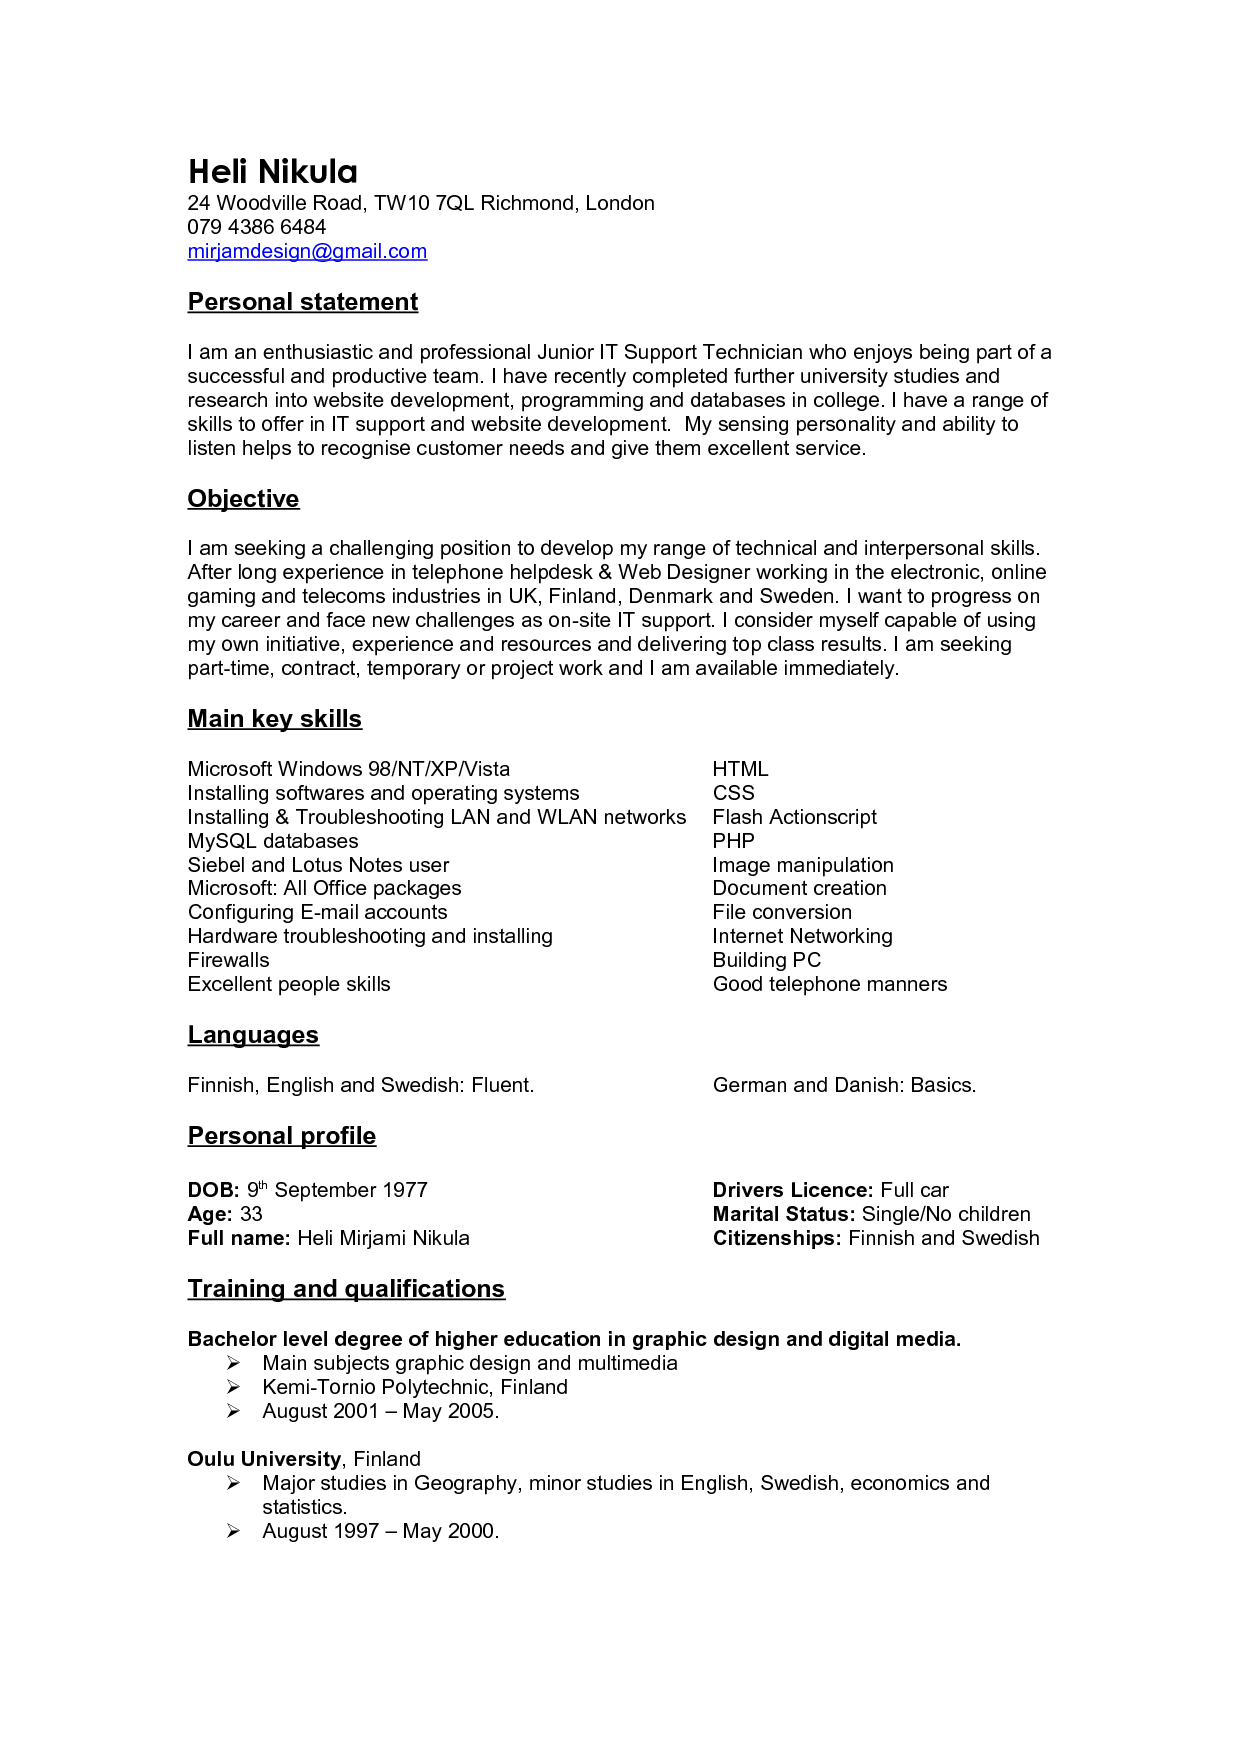 Good Personal Branding Statement Resume Examples With Personal Statement Resume